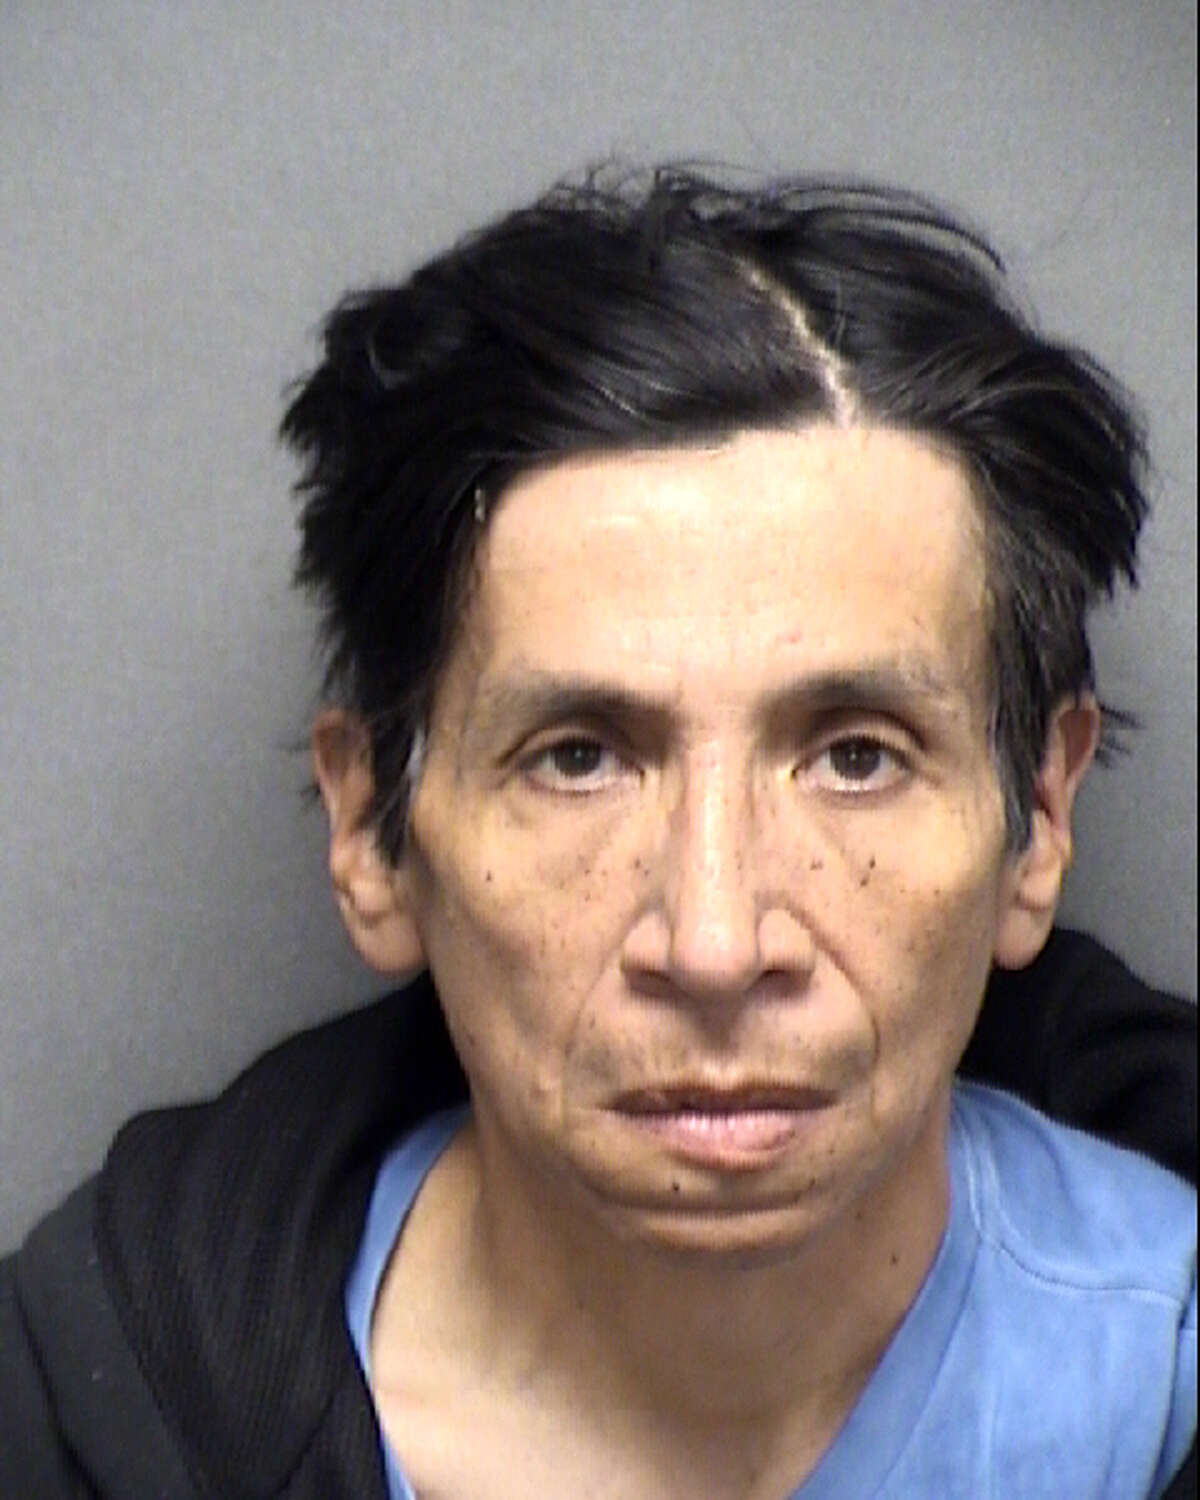 Michael A. Garcia, 53, was charged with aggravated sexual assault.